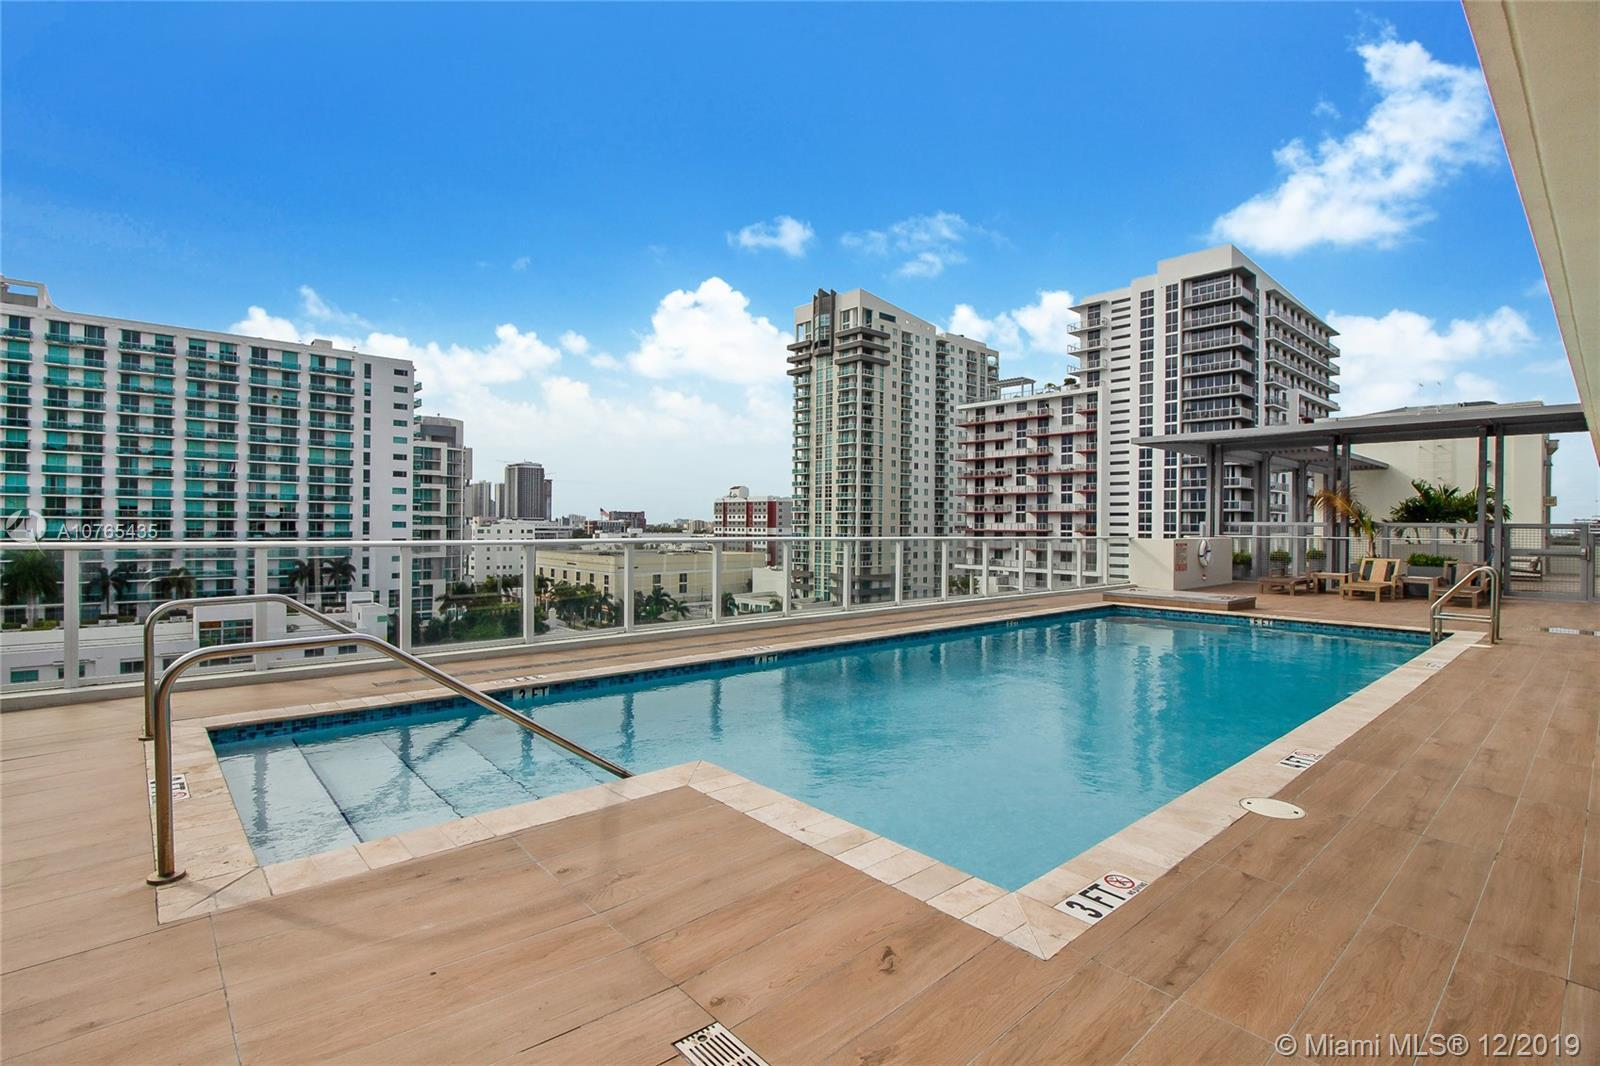 26 Edgewater - Condos for sale